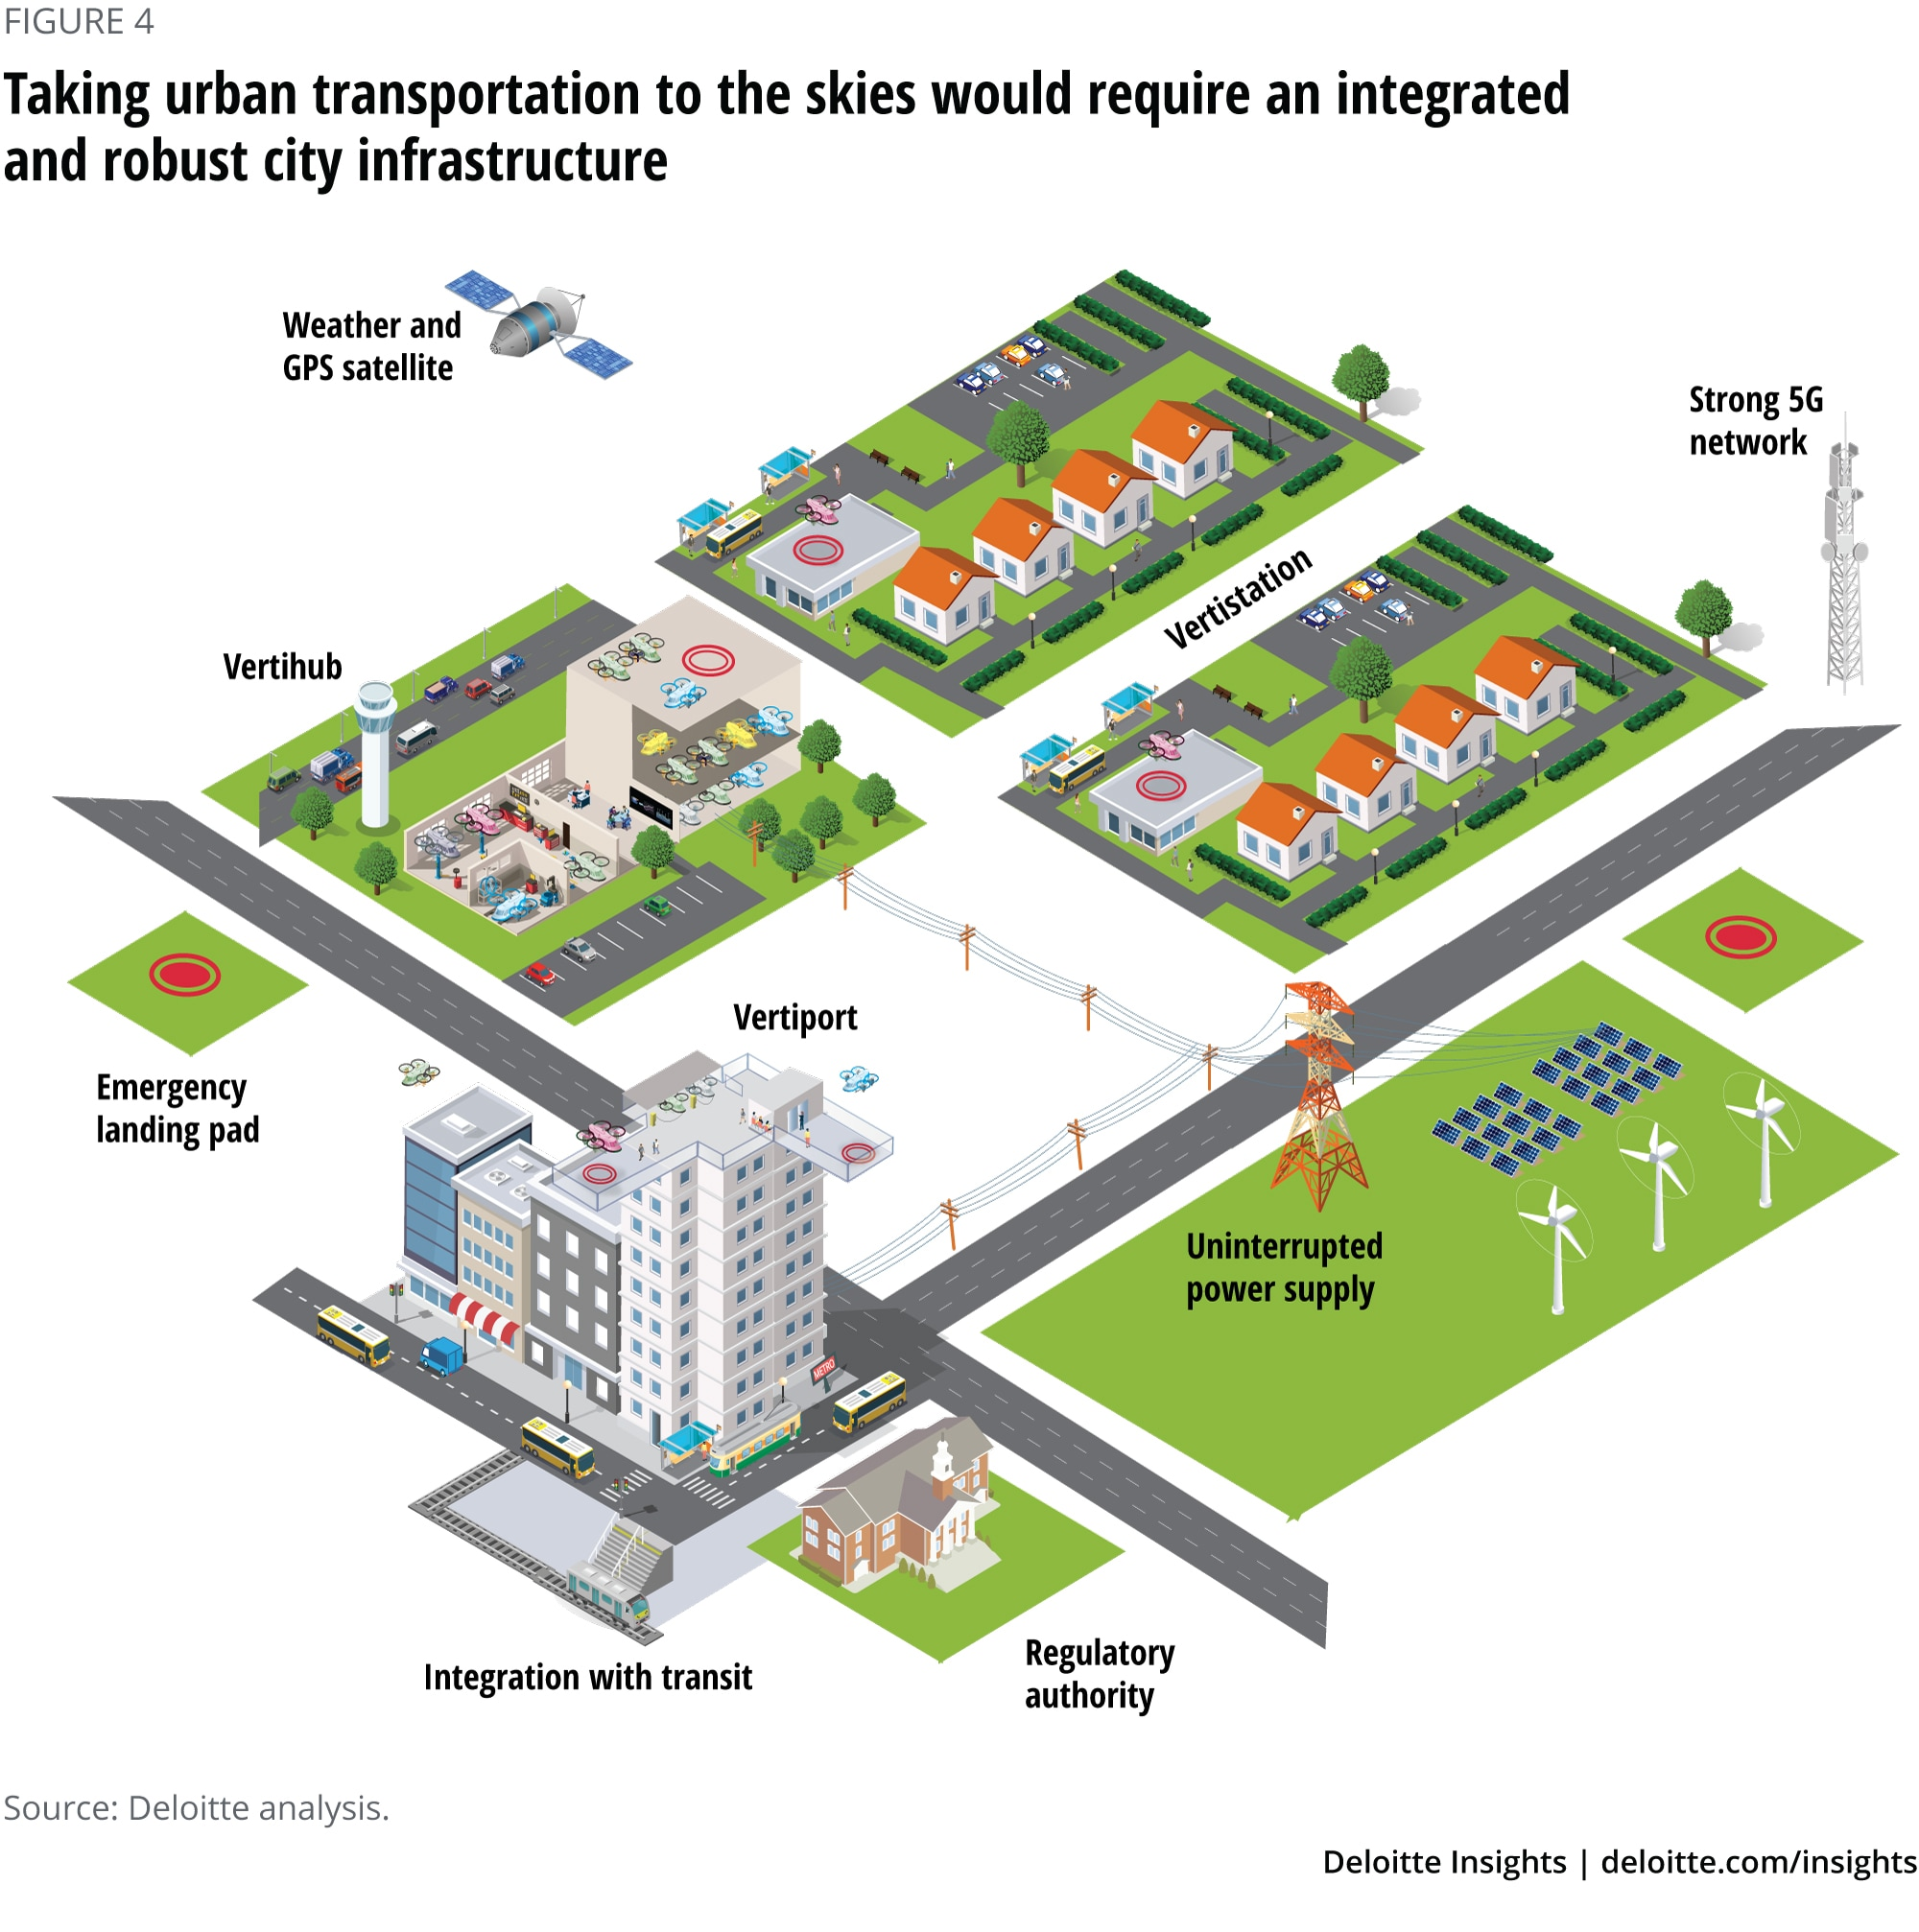 Taking urban transportation to the skies would require an integrated and robust city infrastructure